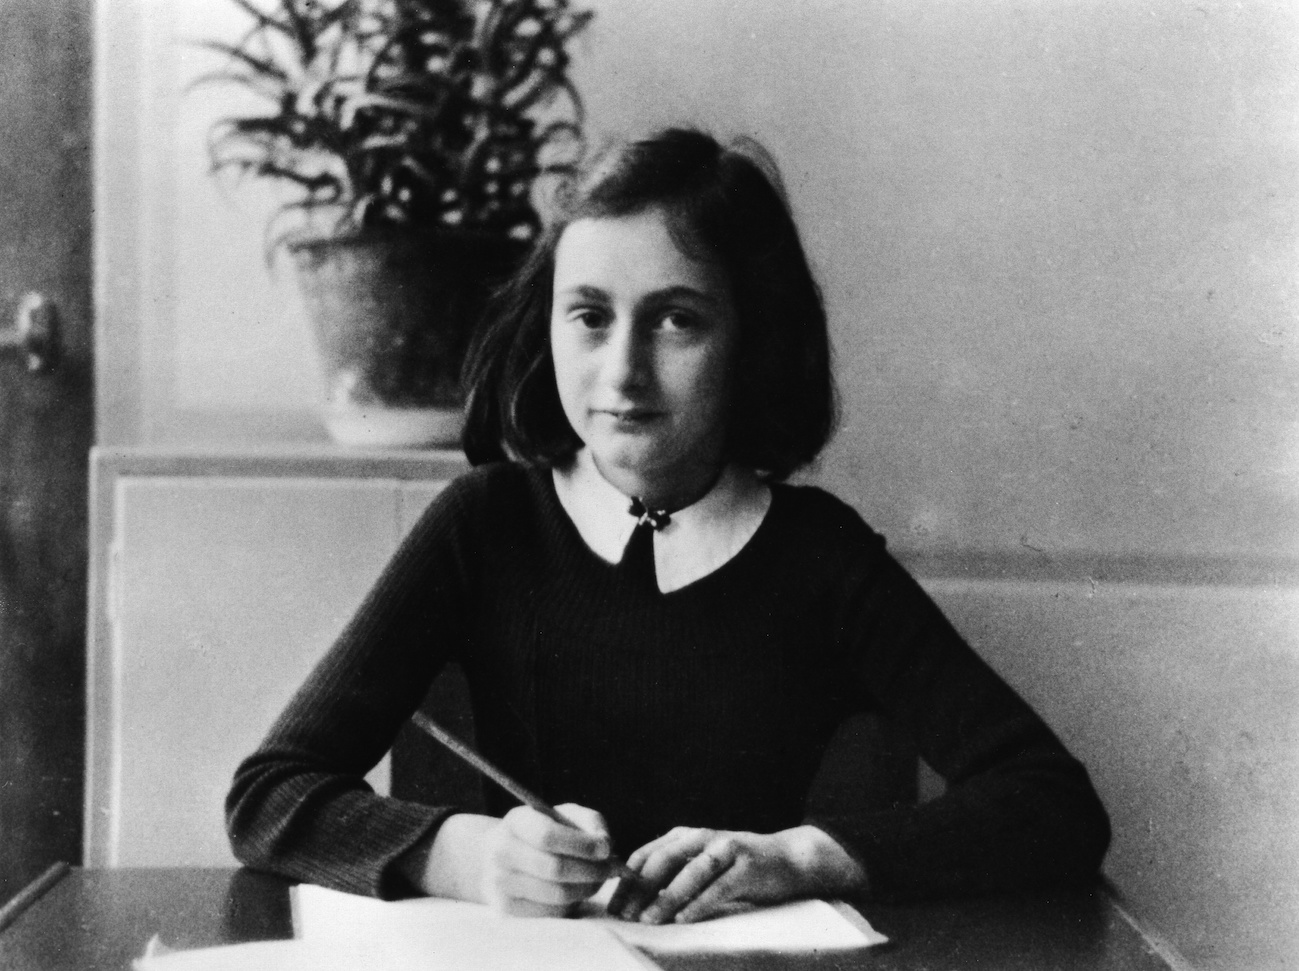 Anne Frank, as a 12-year old doing her homework in 1941